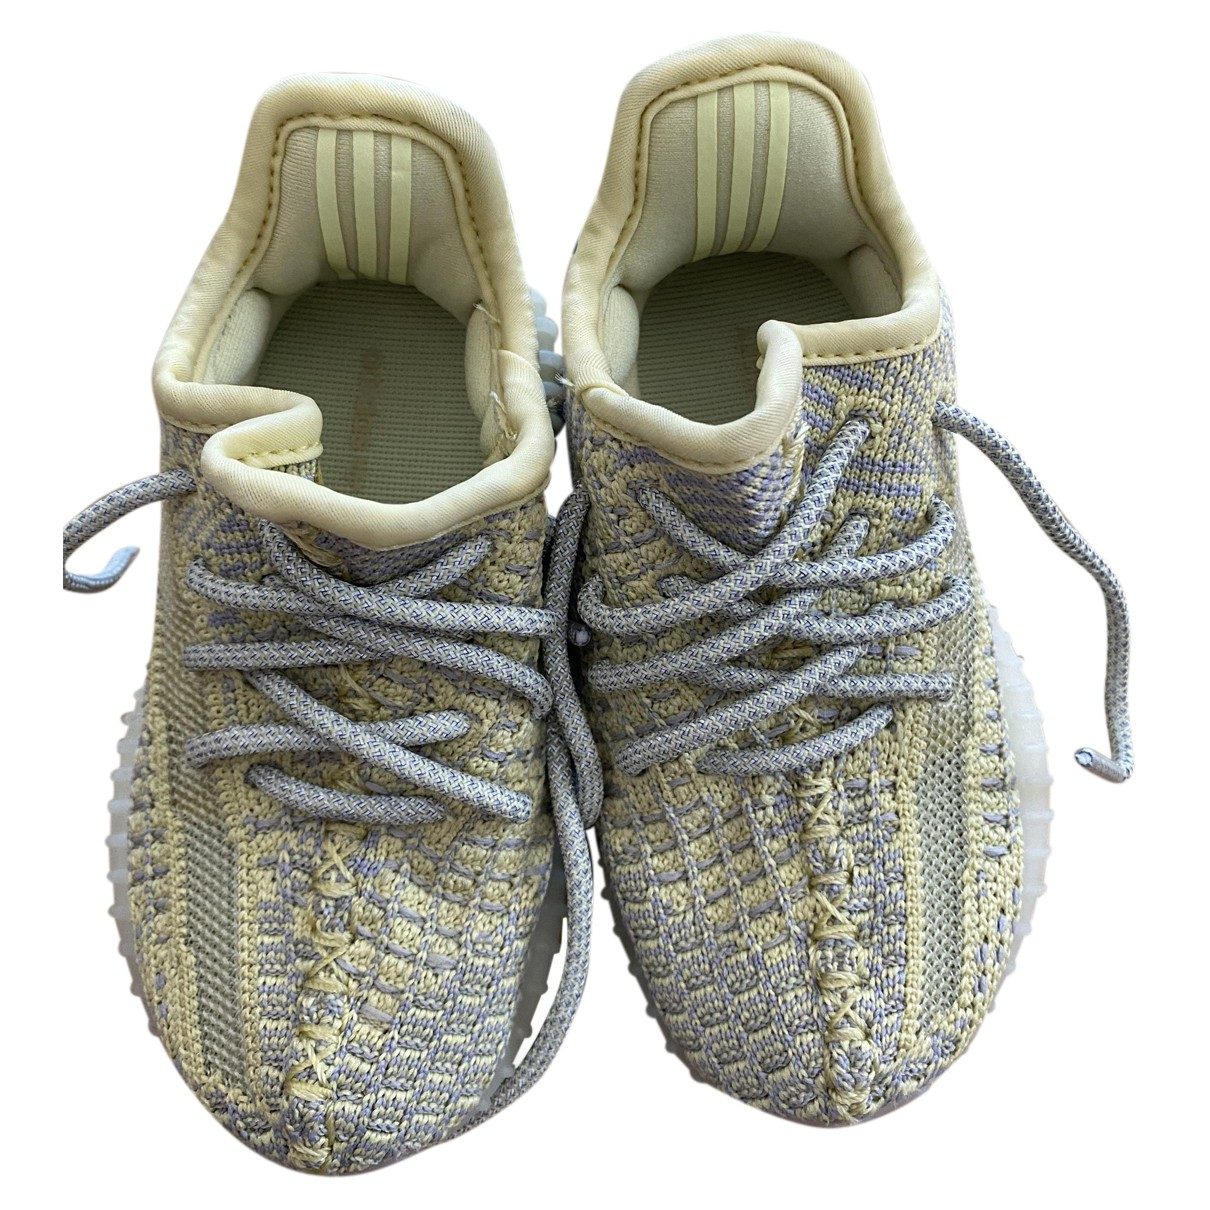 Yeezy X Adidas Boost 350 V2 Yellow Trainers for Kids 23 FR